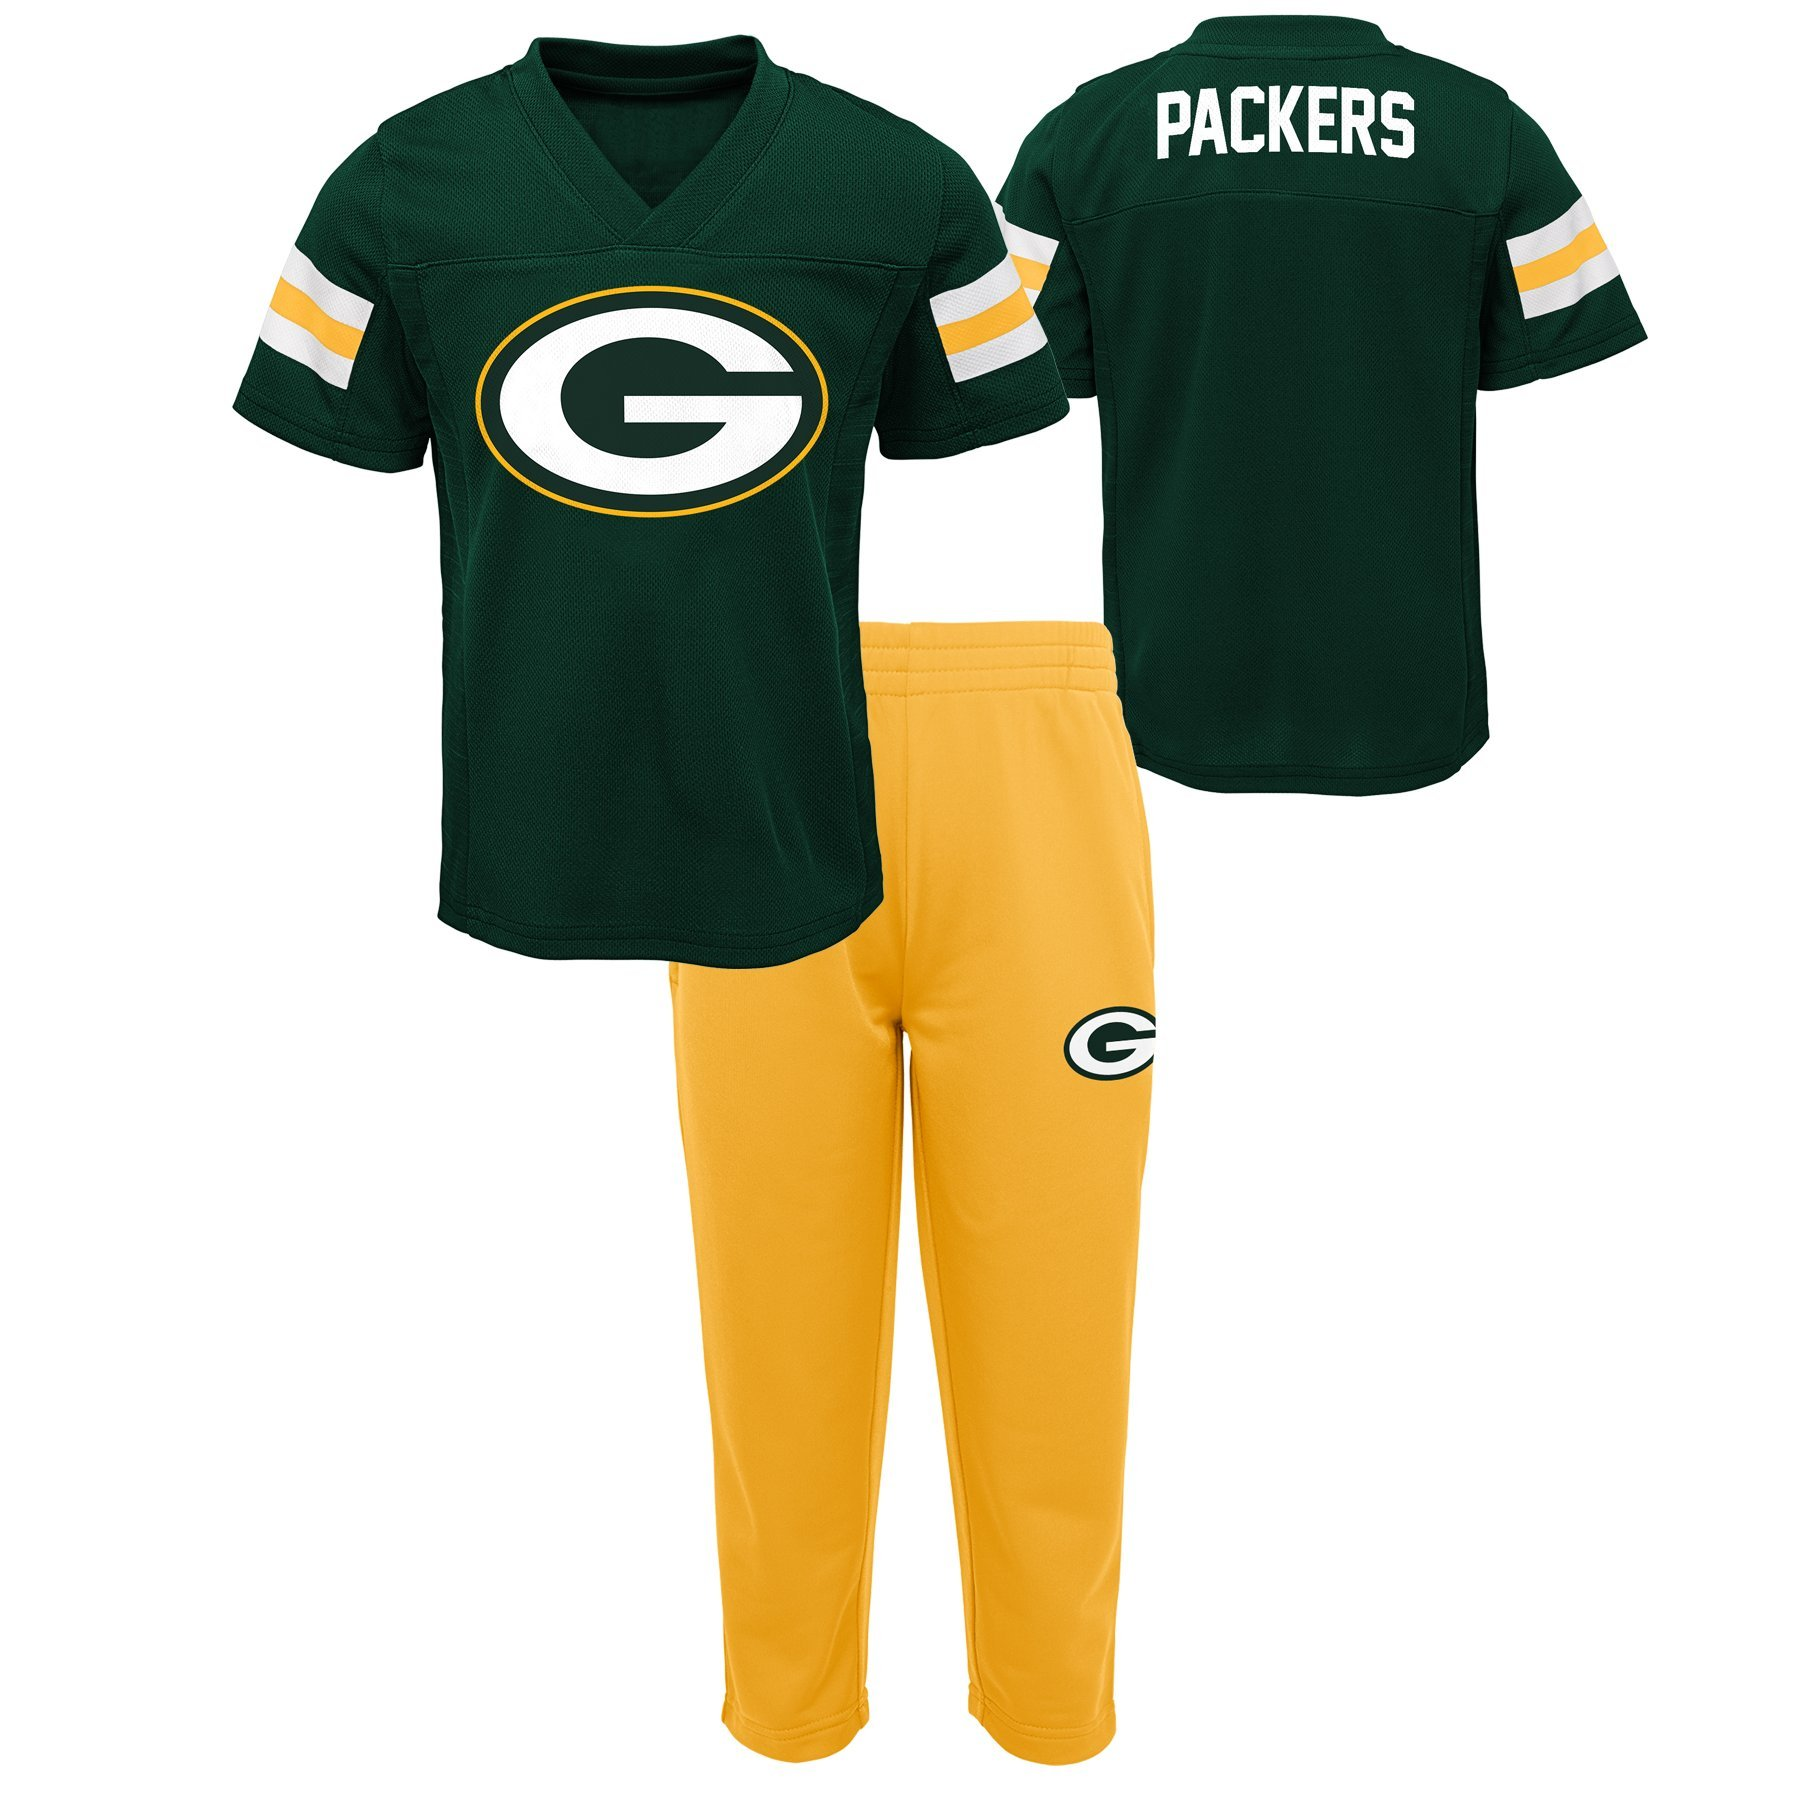 083b5161 NFL by Outerstuff NFL Green Bay Packers Toddler Training Camp Short ...